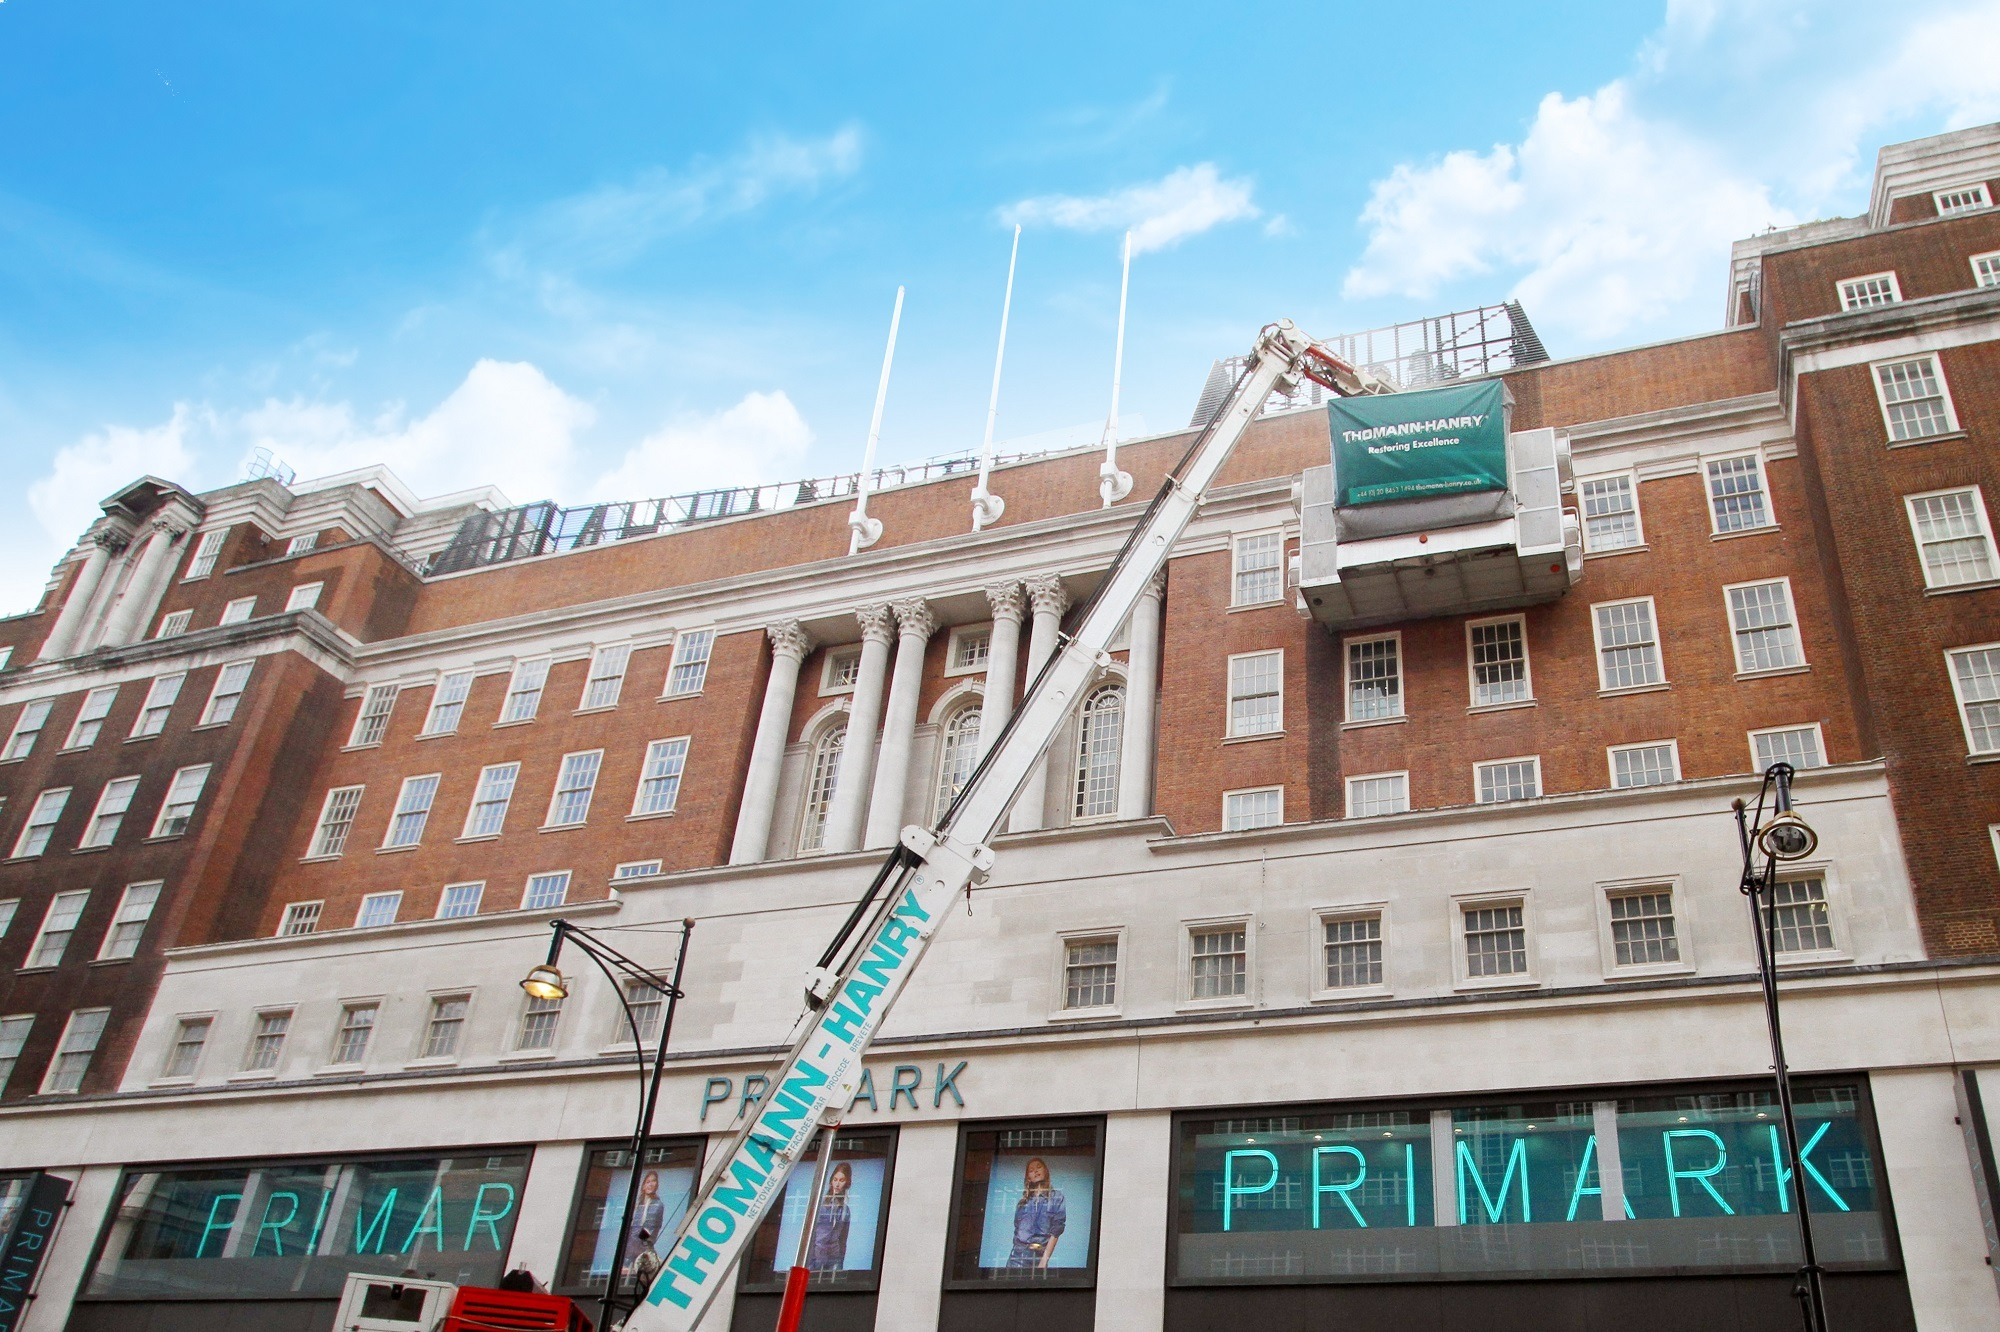 Primark flagship store - Oxford Street